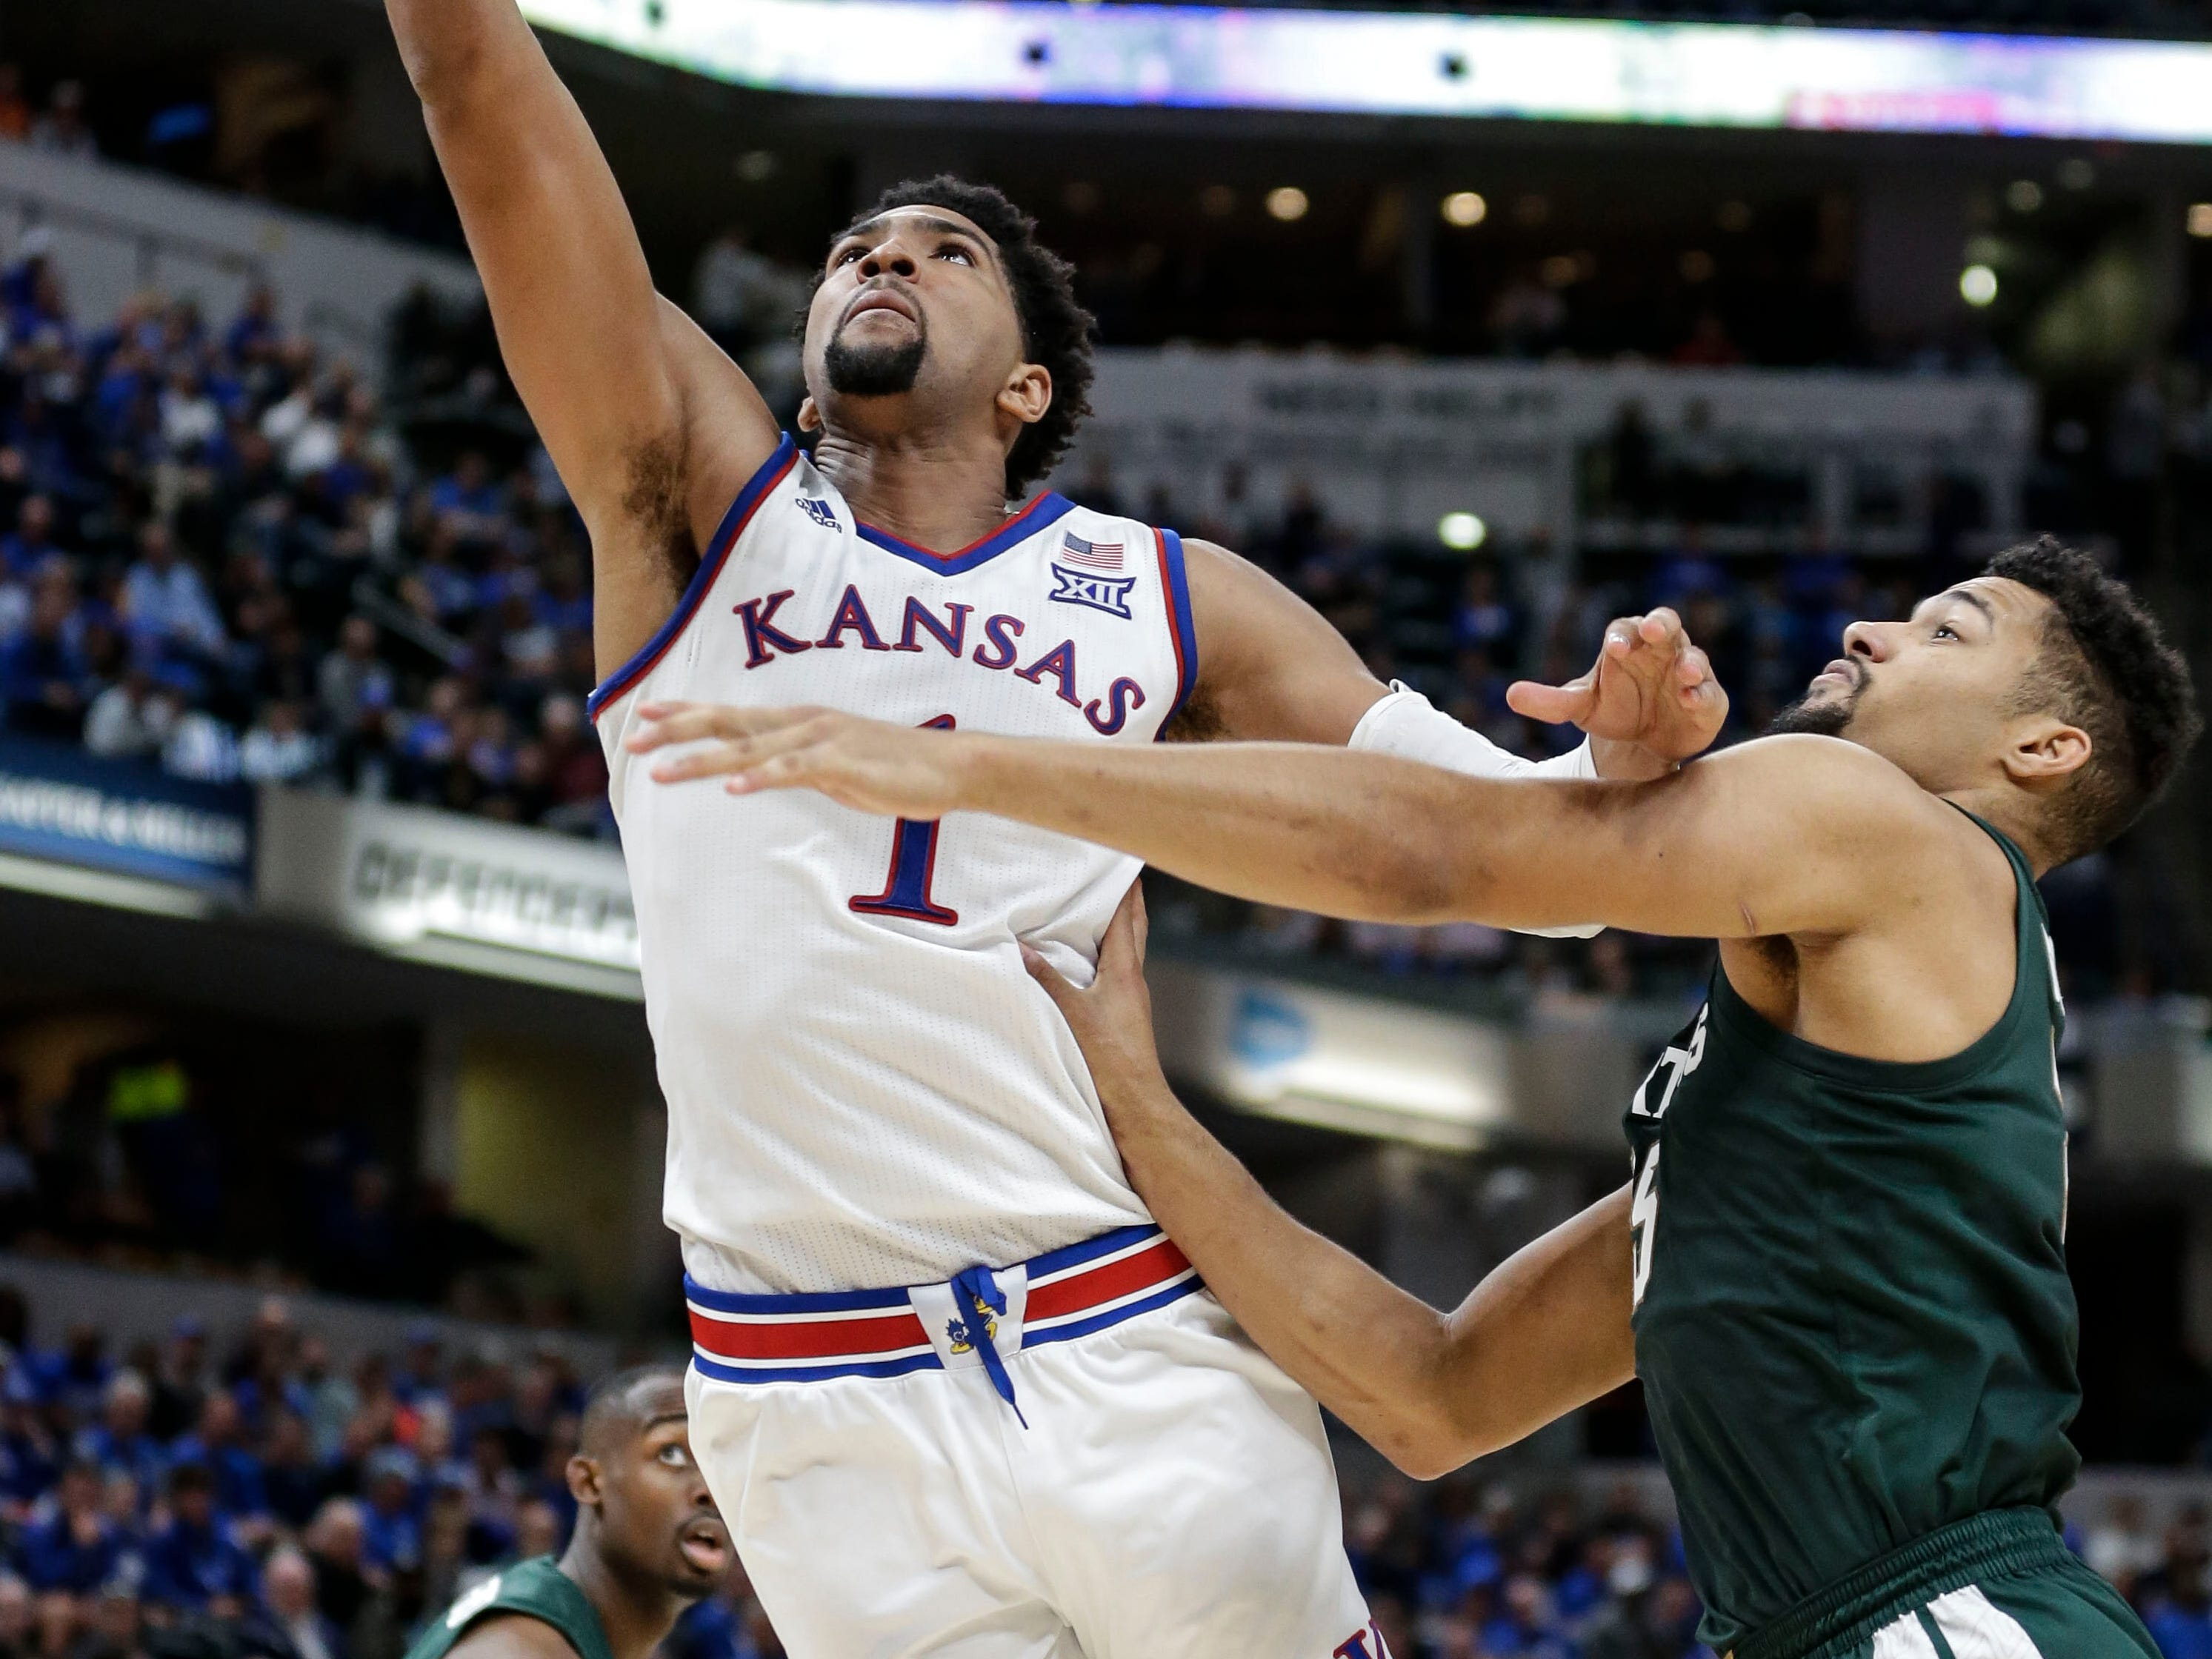 Kansas forward Dedric Lawson, left, shoots in front of Michigan State forward Kenny Goins during the second half of an NCAA college basketball game at the Champions Classic in Indianapolis on Tuesday, Nov. 6, 2018. Kansas won 92-87.